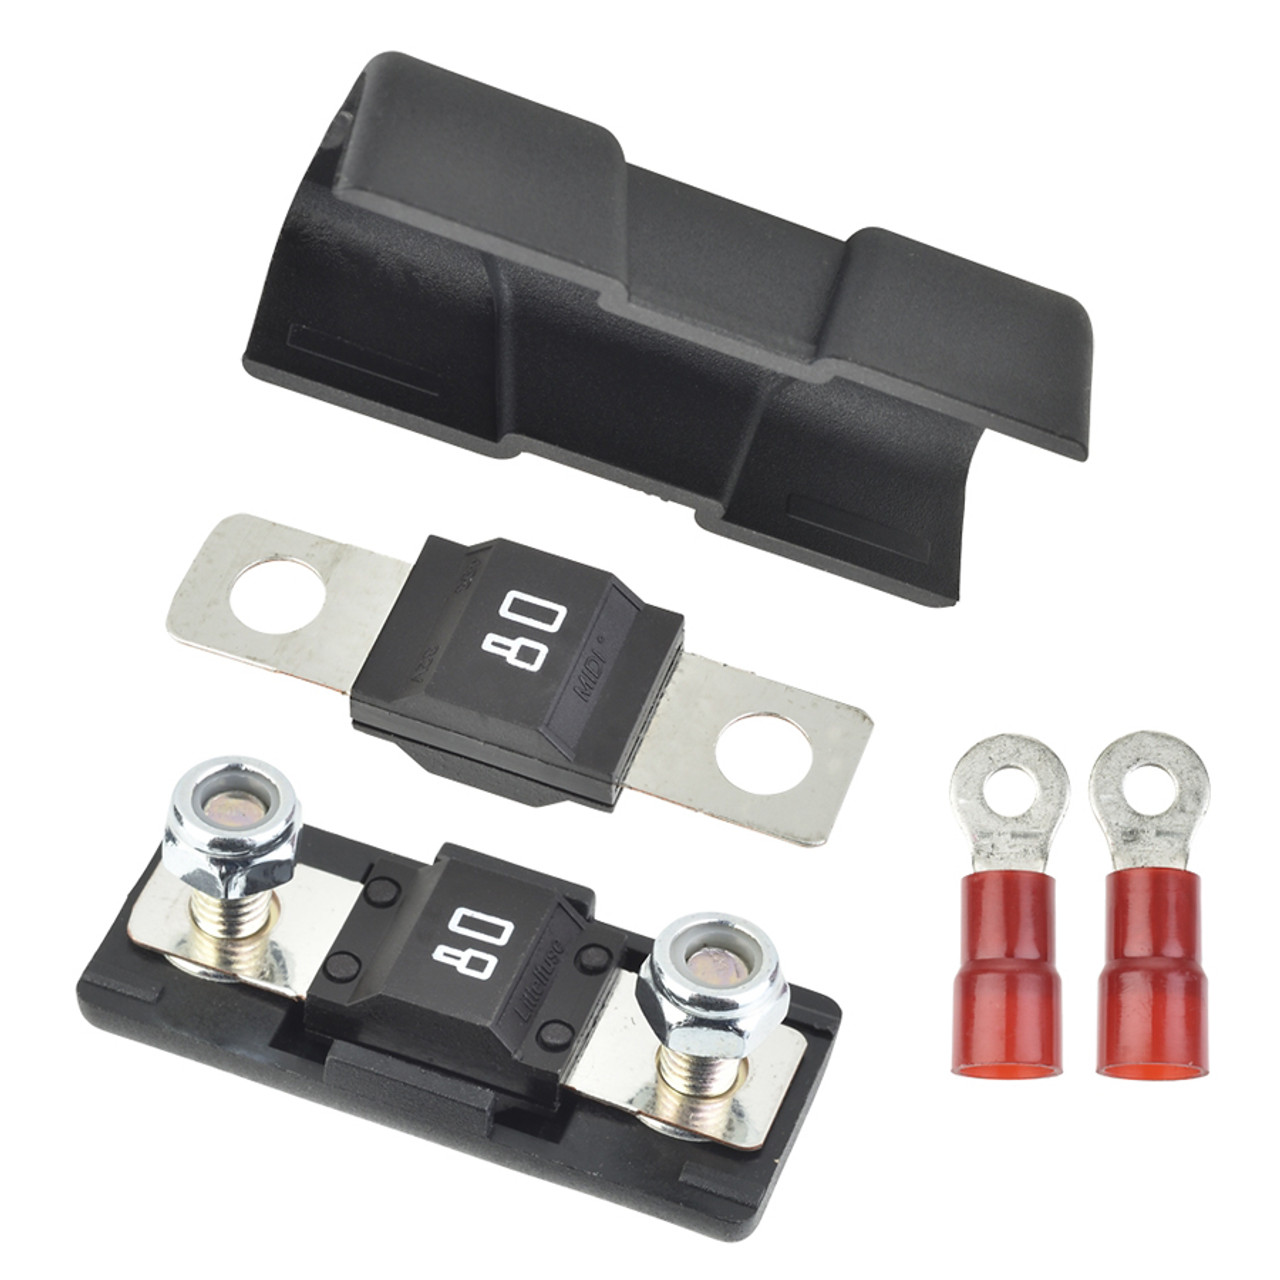 Alternator Output Wire Fuse 80 amps - FK080